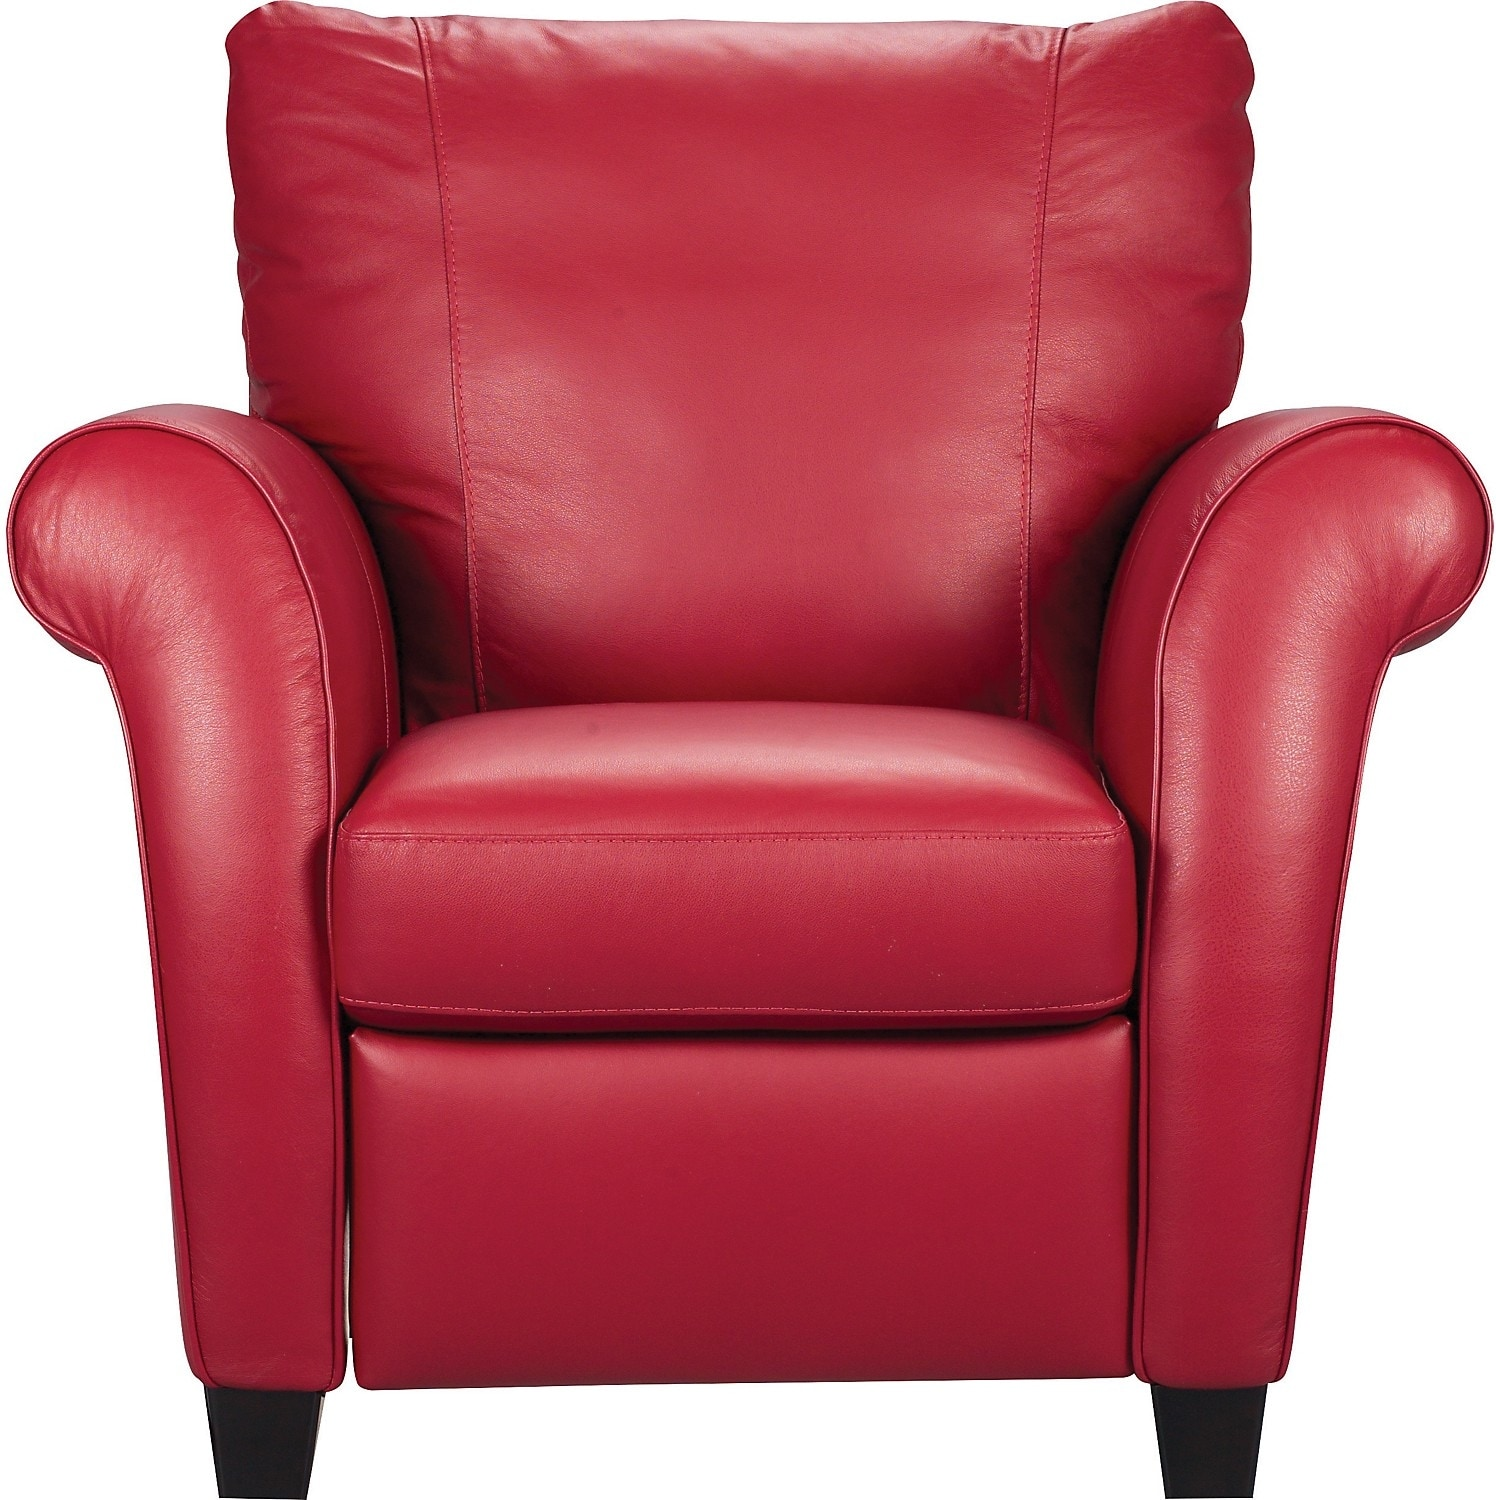 Real Leather Recliner Chairs Layla Genuine Leather Reclining Chair Red The Brick